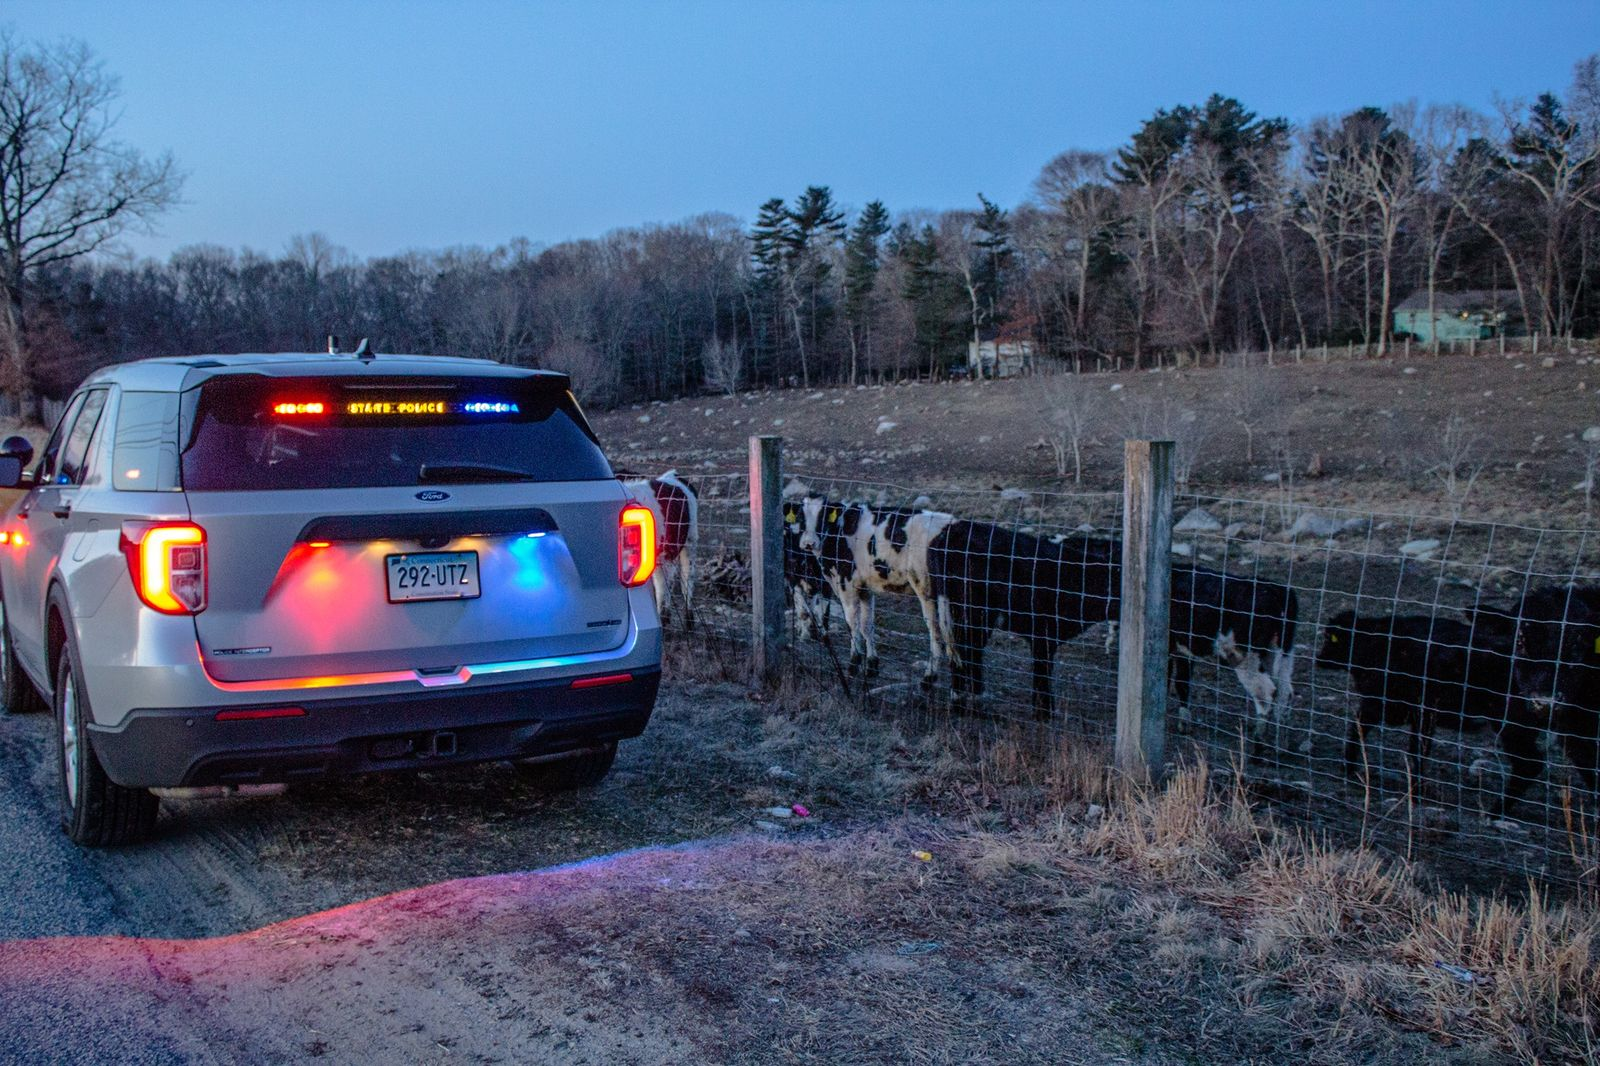 Connecticut State Police said some cows found along Route 184 in North Stonington were safely escorted back to their pasture. (Connecticut State Police photo)